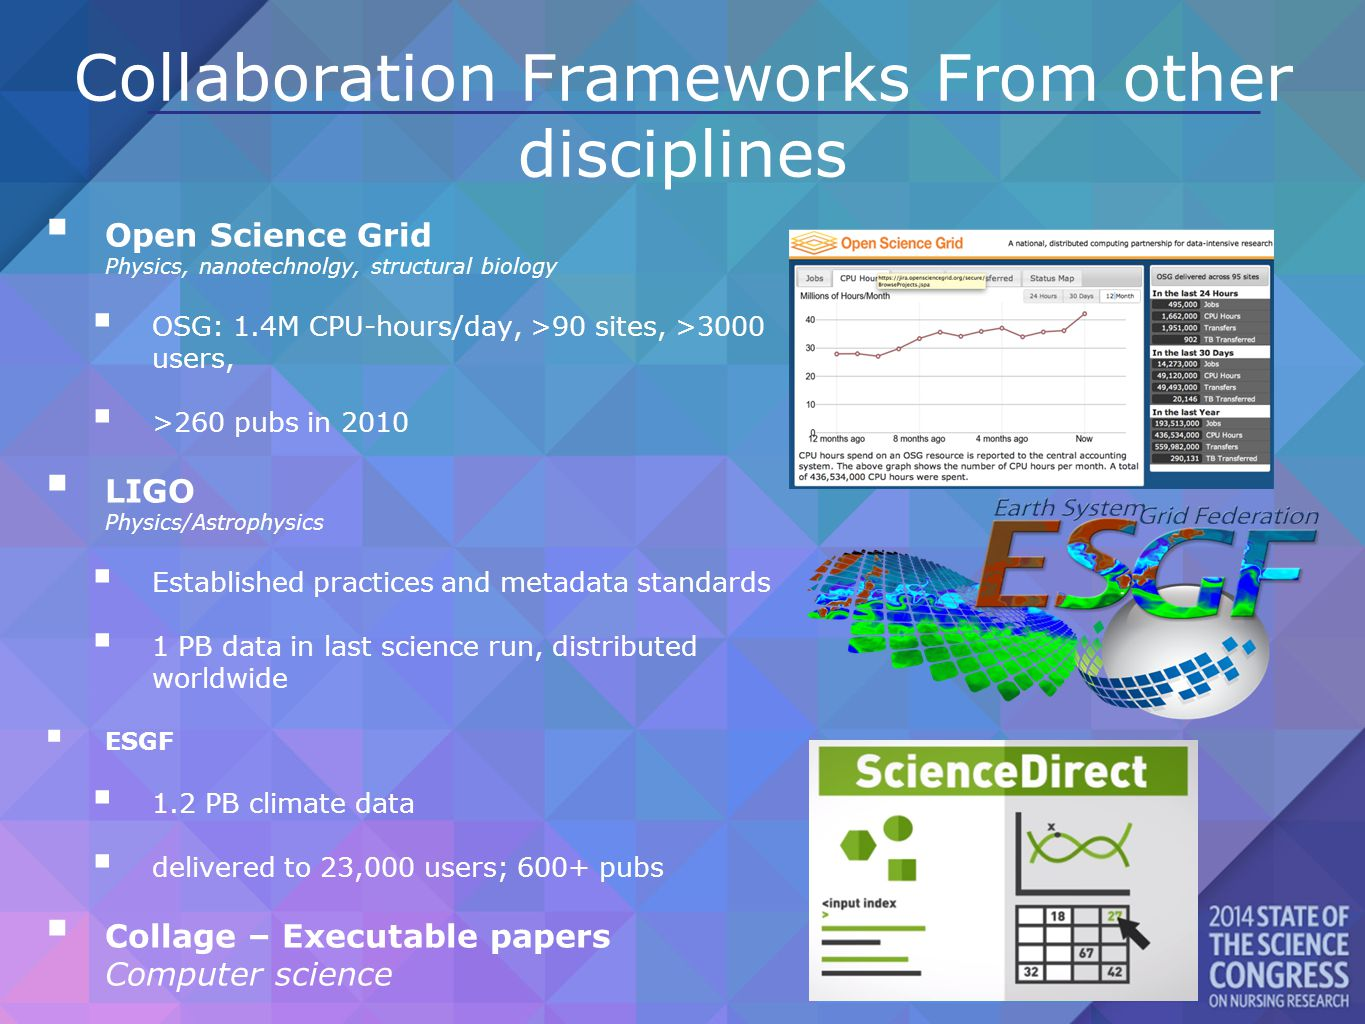 Why hasn't Outcomes Research adopted collaborative methods used in physics, climate science, and genomics? - Everyone in data-driven research - Everyone in data-driven research